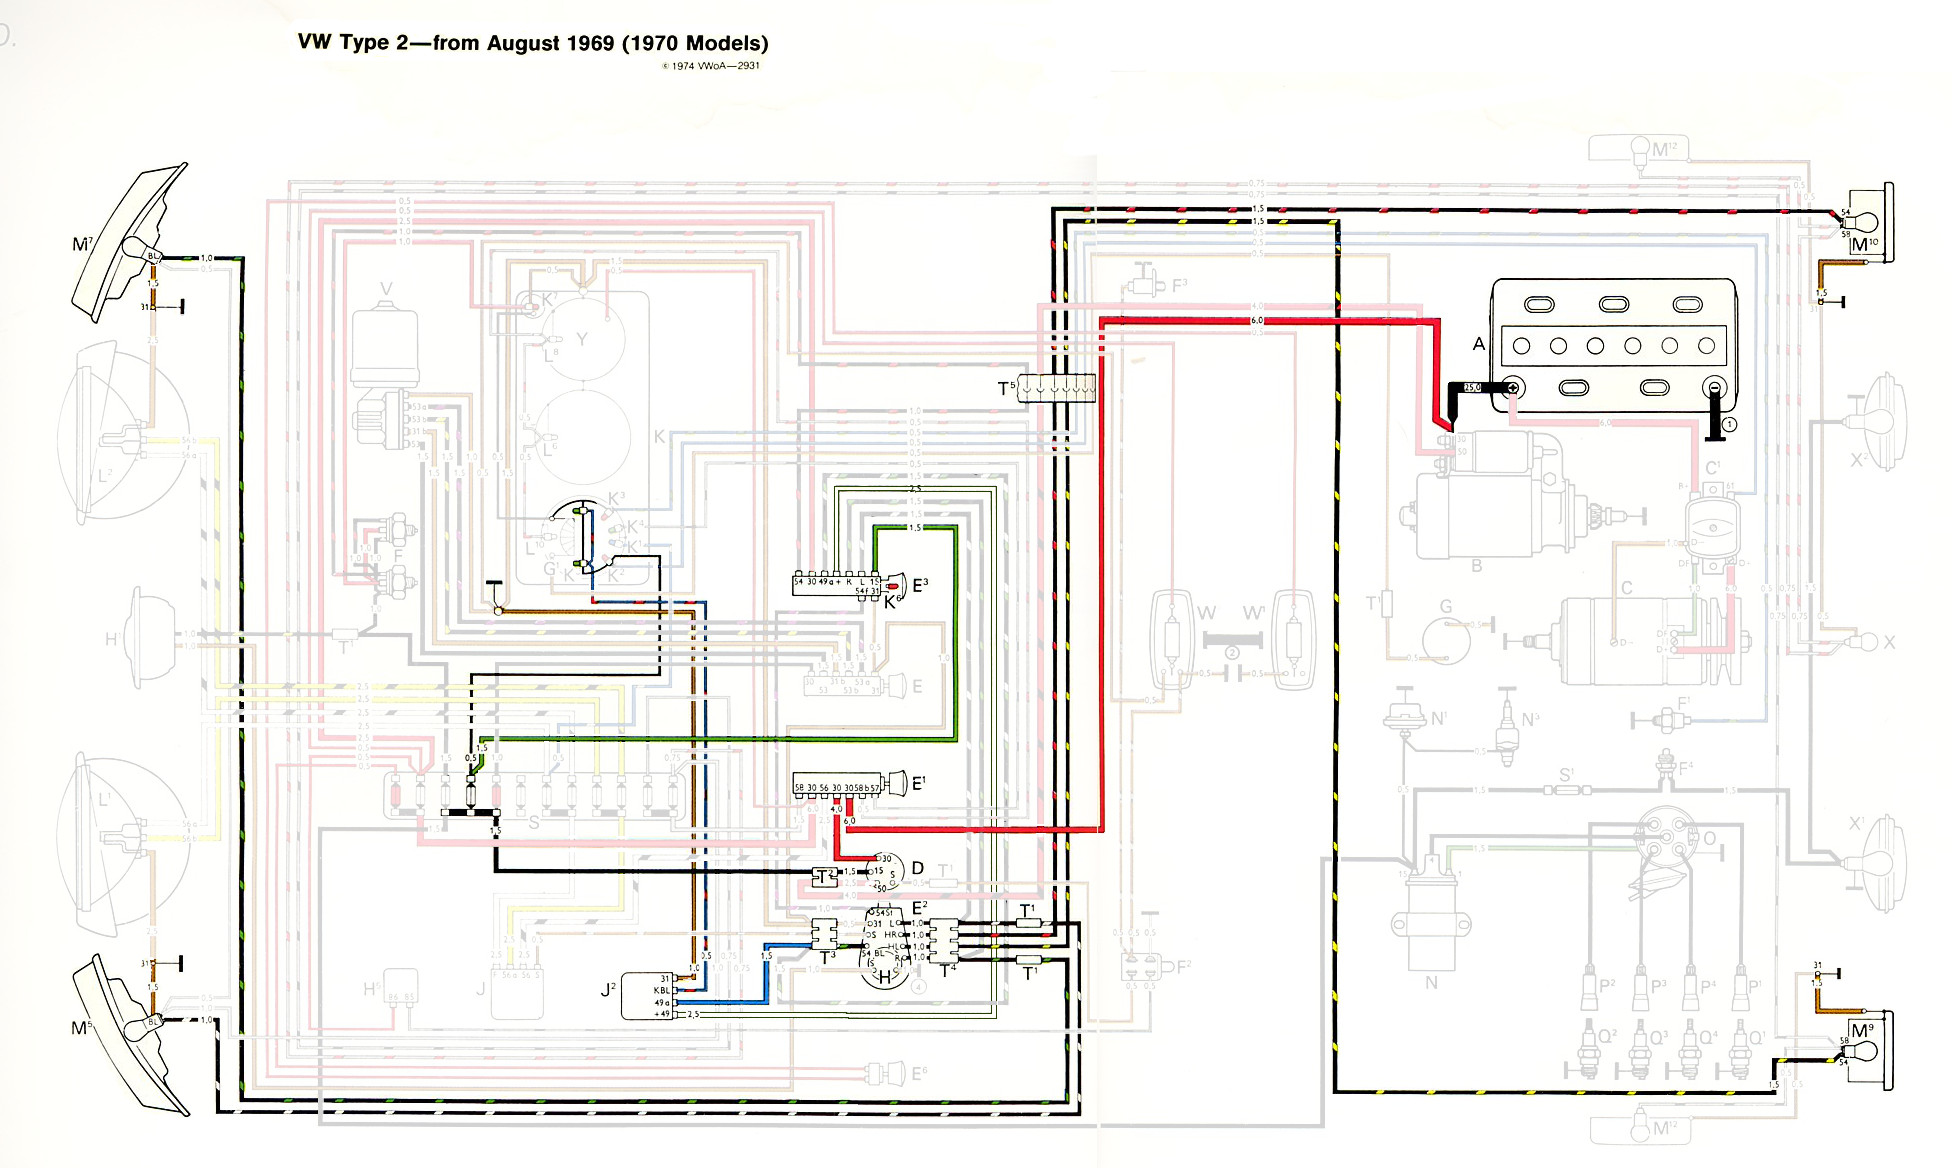 1973 Vw Engine Diagram Wiring Library Mg Midget Thesamba Com Type 2 Diagrams Rh Bus Dashboard